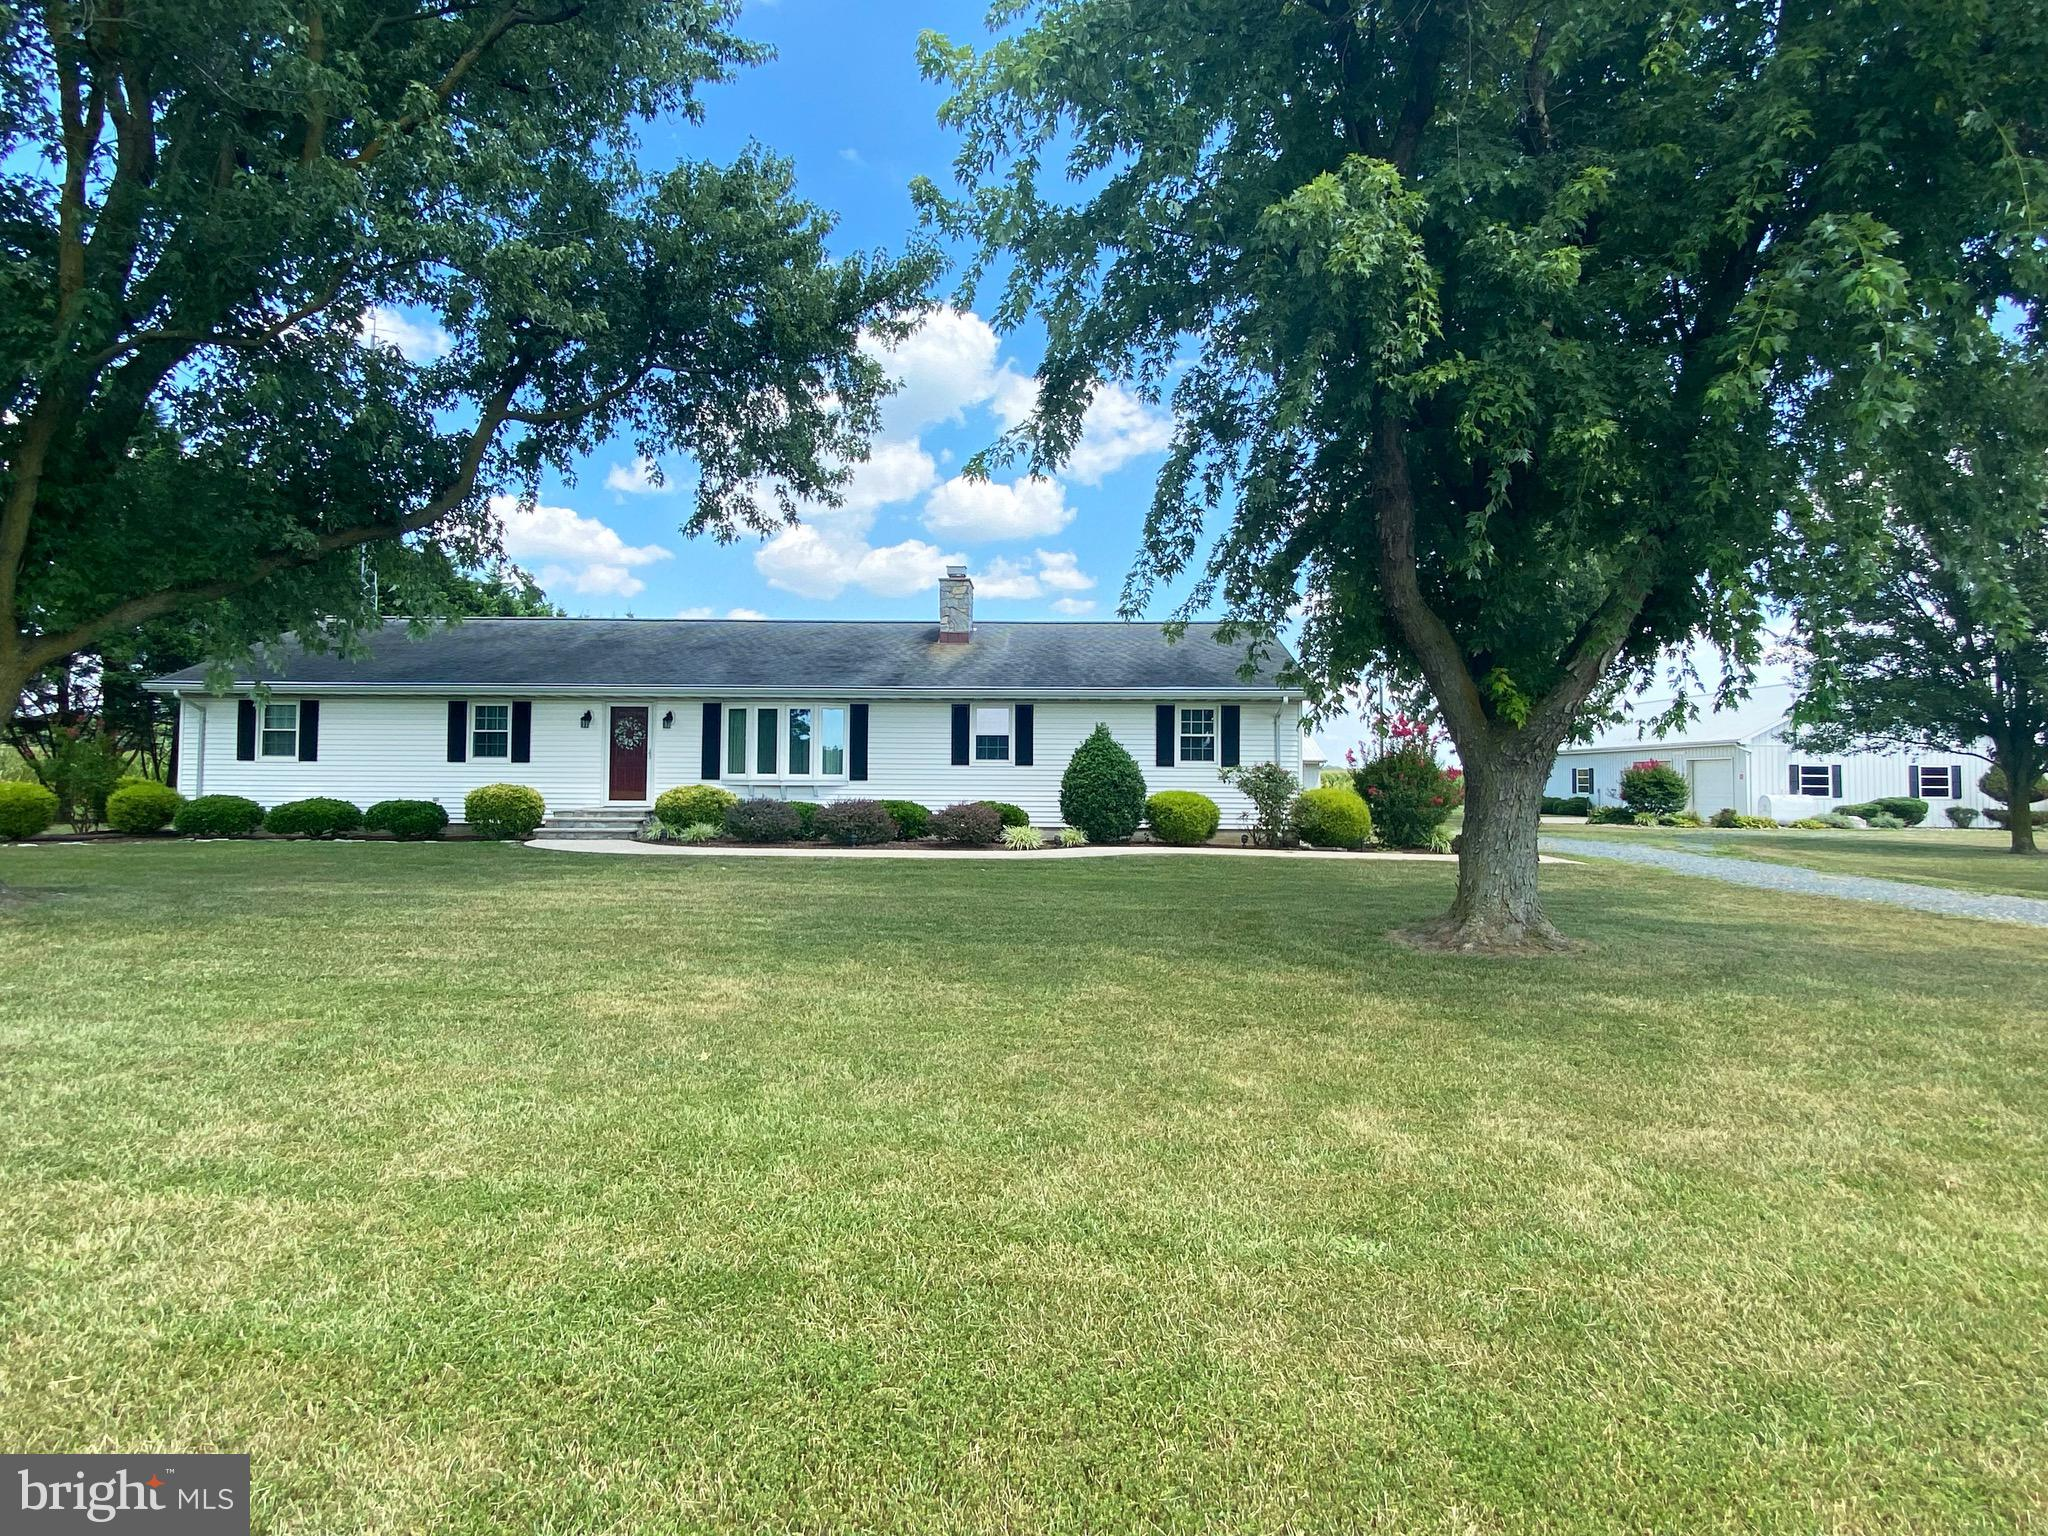 This two parcel property includes 2.32 acres with a 1700 square foot rancher and 3 outbuildings with a total of 13 bays. Buildings are labeled by A, B and C.  Building A is 30x40 with a two car garage and additional storage area with a lean to off the back. Building B is 30x60 with 2 bays on one side and 5 on the other. Building C is 30x76 built in 2010 with 5 bays, one of which is sized for a RV or bus. Building C also has a 14x76 covered lean to off the back. All building have electric and heat.  The rancher is a 3 bedroom, 2 full bath 1700 square foot home built in 1982 with a gorgeous gas fireplace and a large sunroom off the back. Composite decking off the back over looks the fields and gorgeous landscaping.